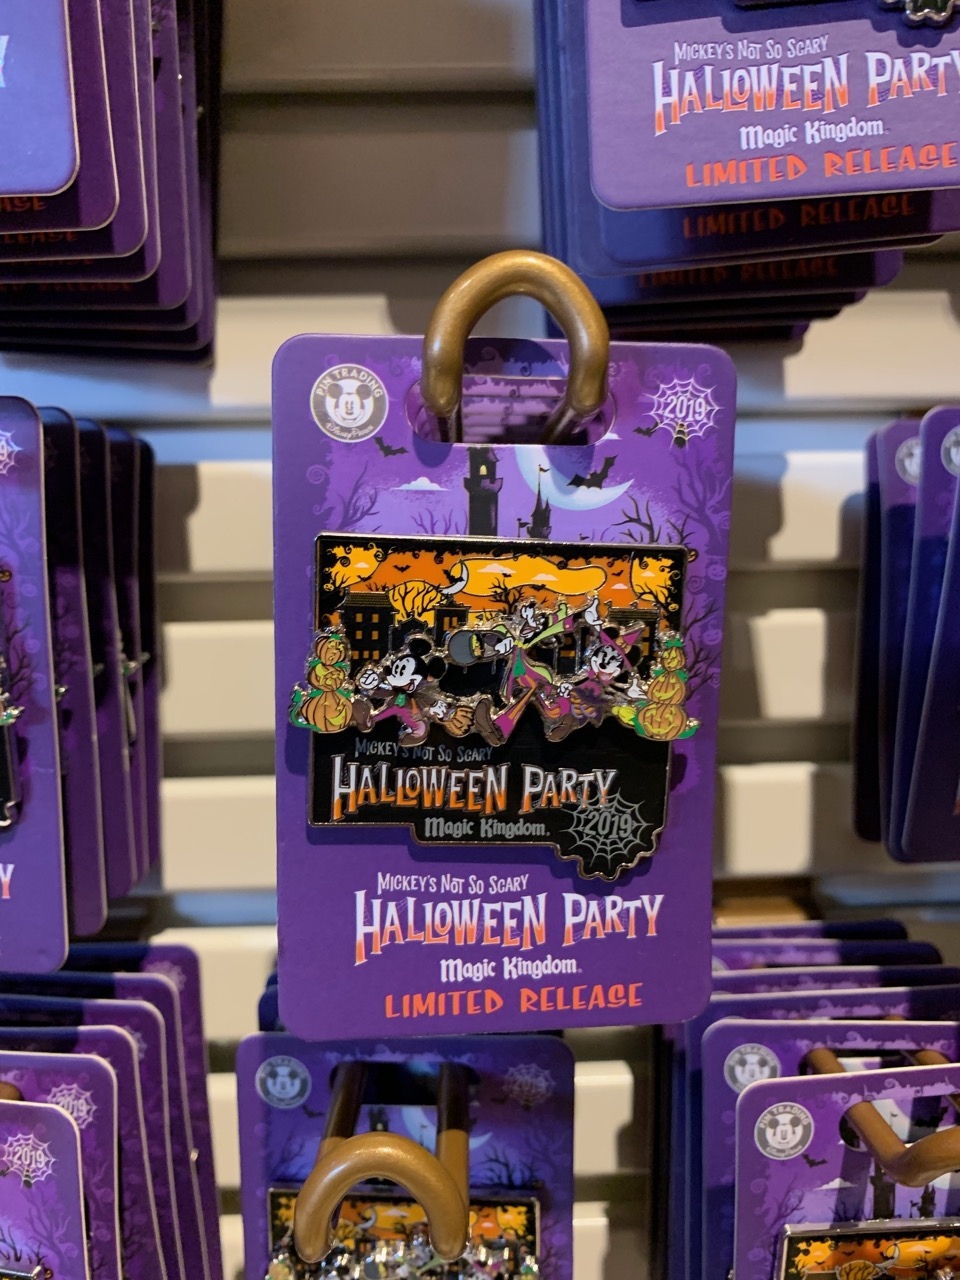 mickeys not so scary halloween party 2019 merchandise 11.jpeg